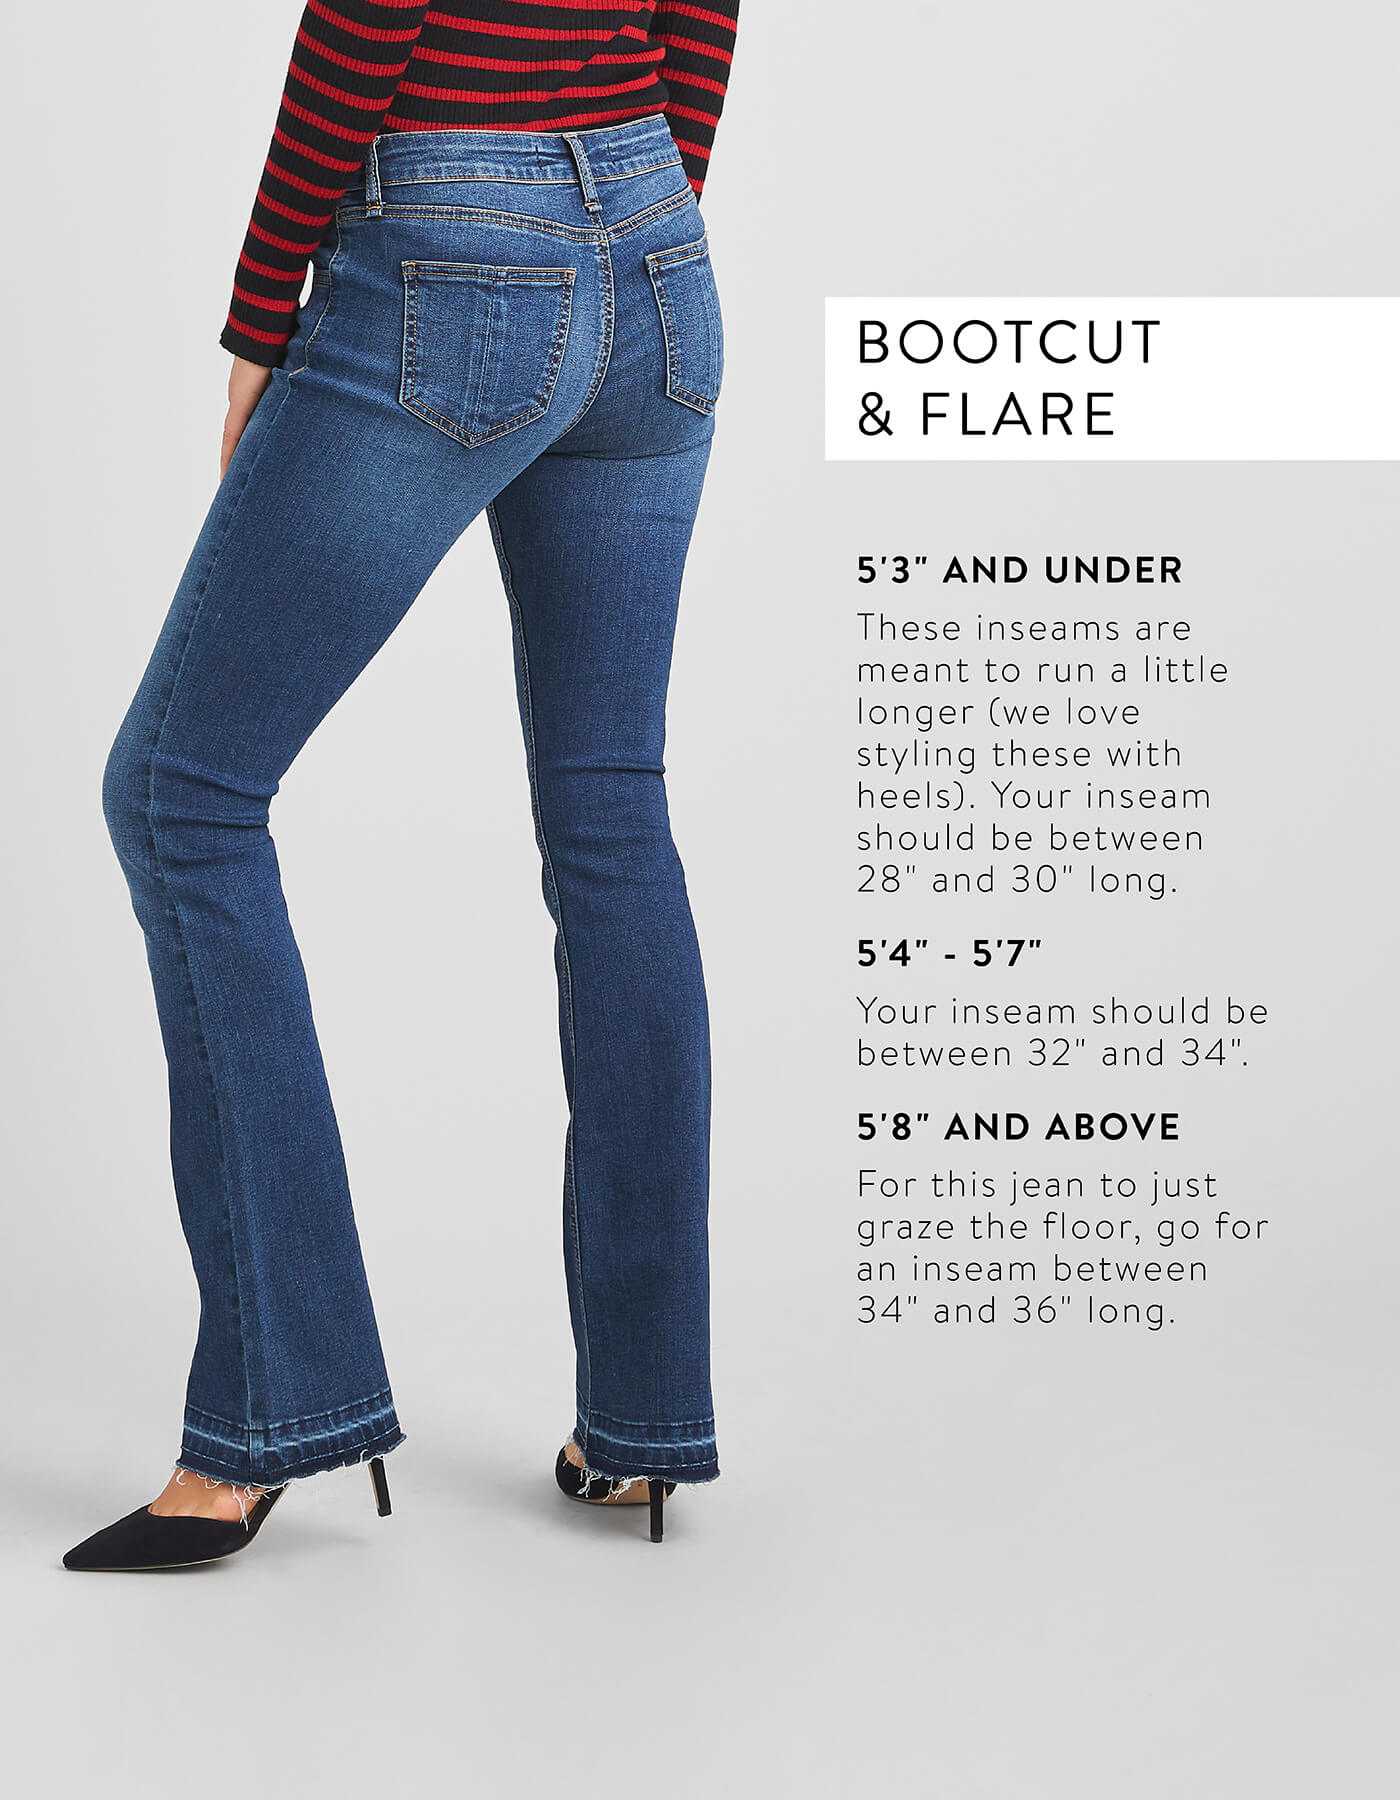 Fall Denim Guide: 7 New Styles You Need To Wear ThisSeason